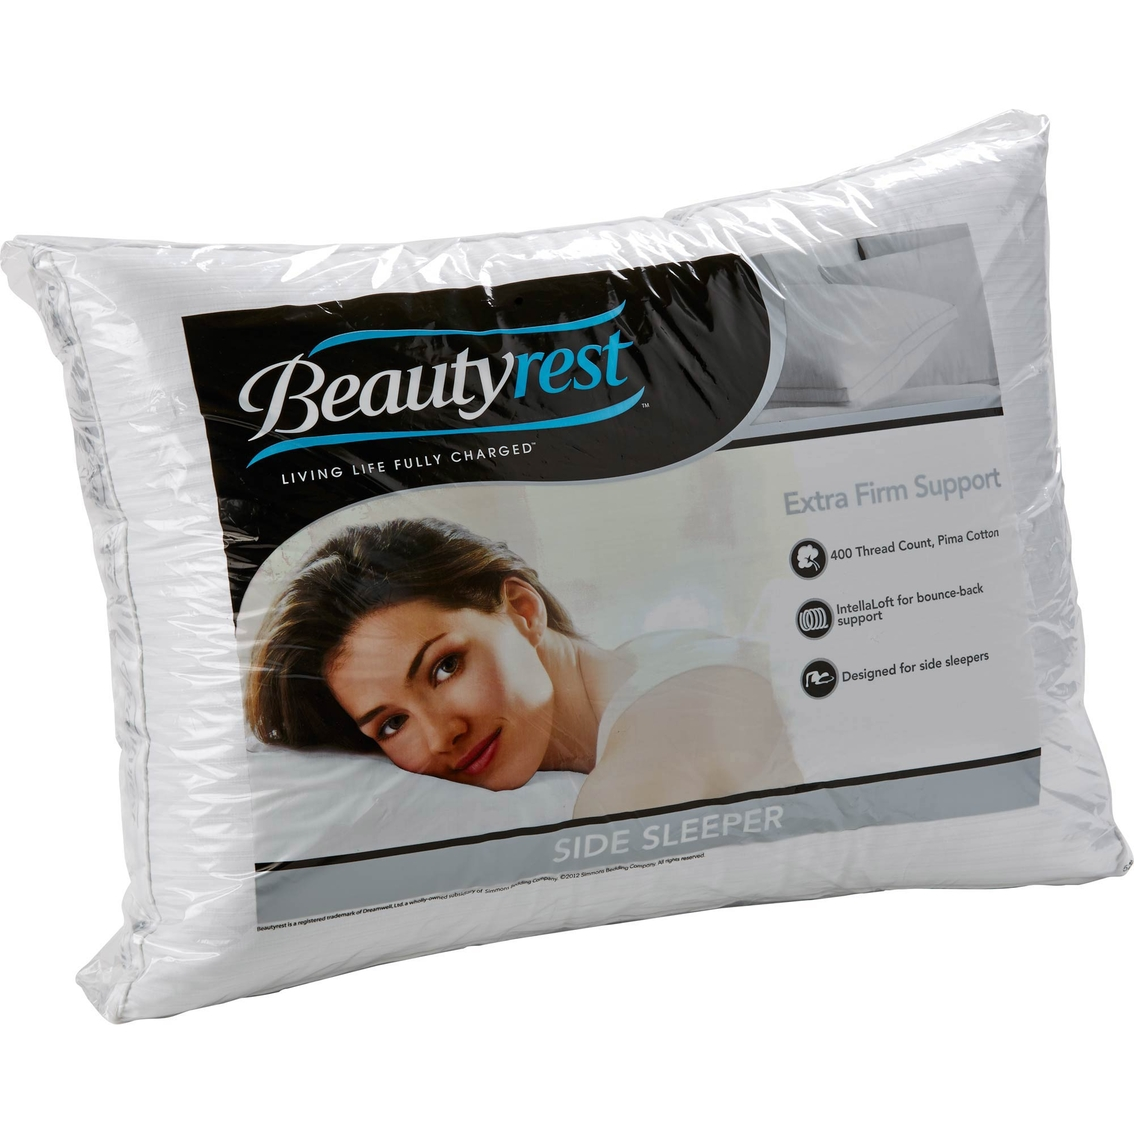 Beautyrest Extra Firm Density Side Sleeper Pillow Bed